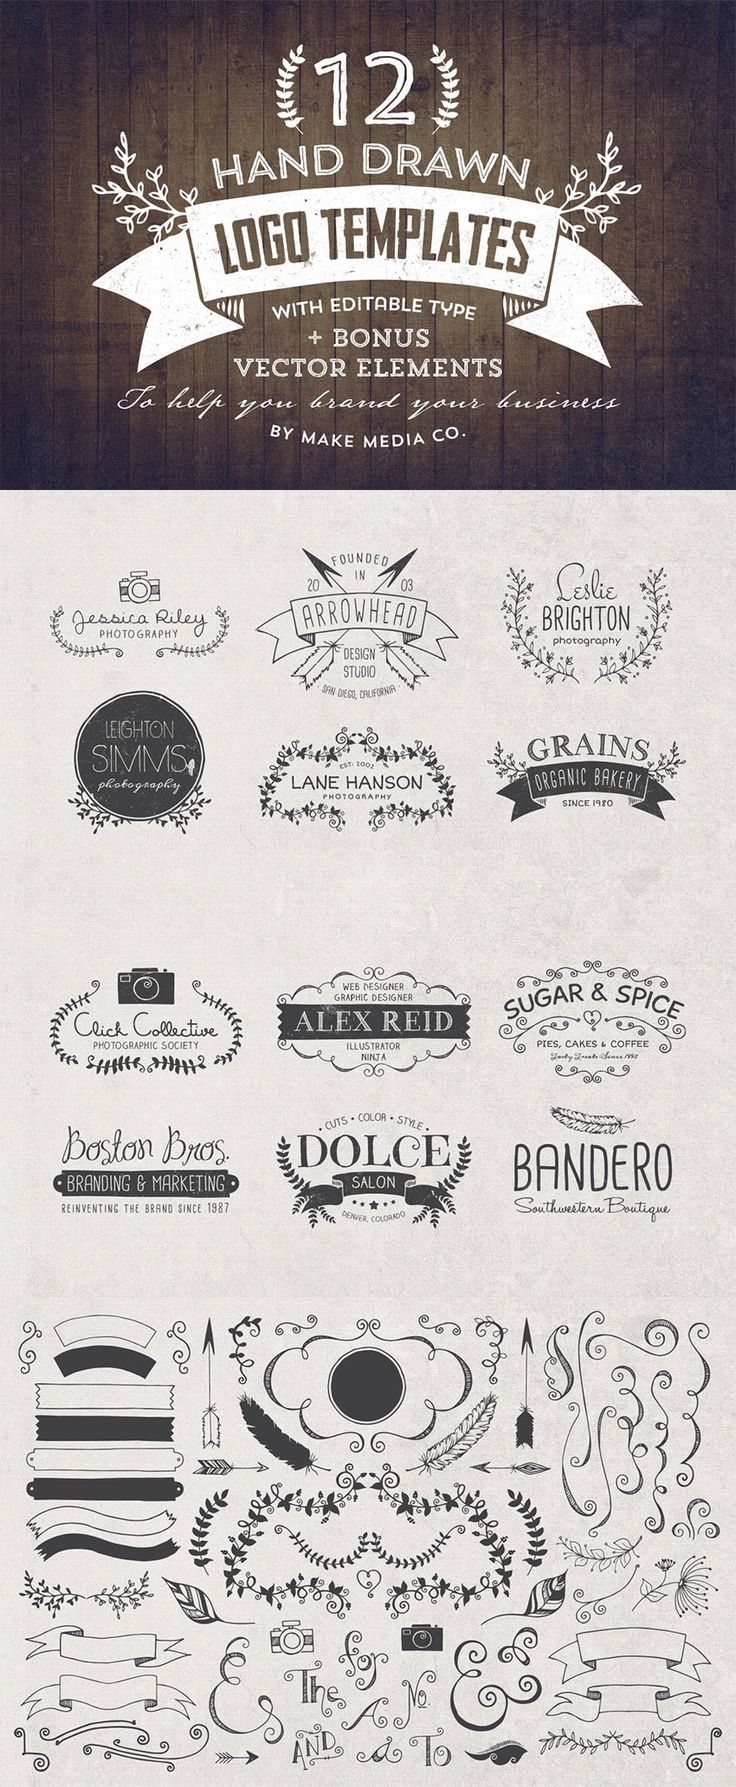 An expertly handcrafted logo can mean the difference between looking  professional, or cheap and inexperienced. This bundle from MakeMediaCo. includes a trio of hand drawn logo templates (36 total) pl